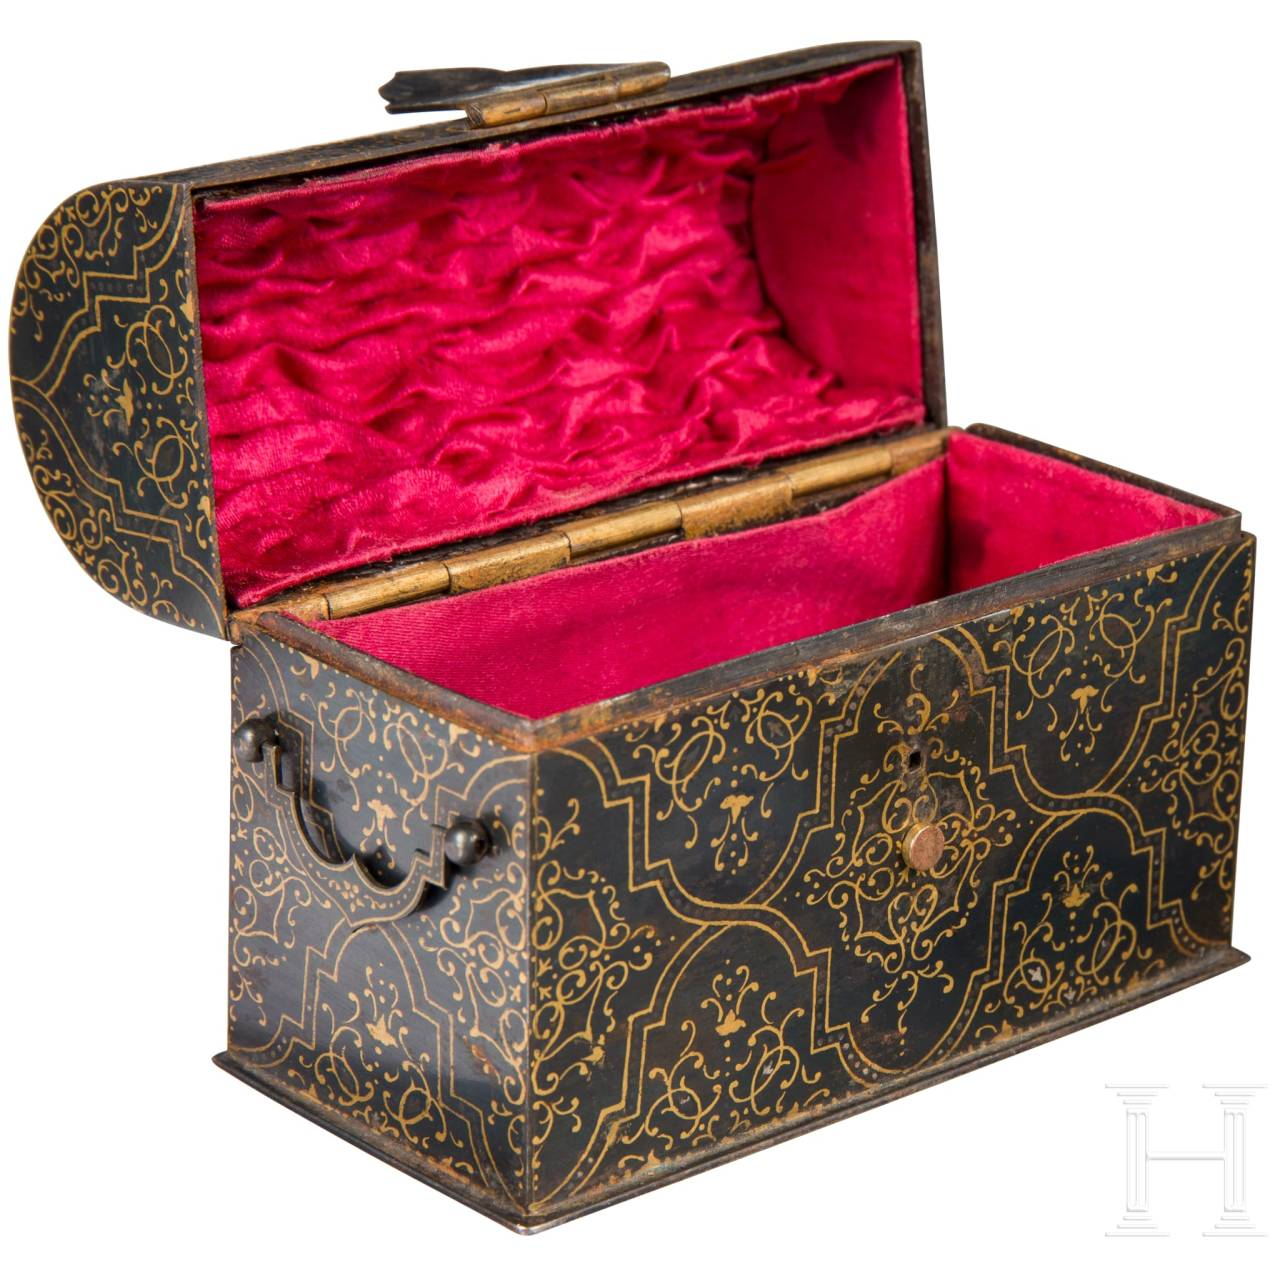 A fine darkly patinated and gold-painted Indian iron casket in the shape of a chest, 19th century